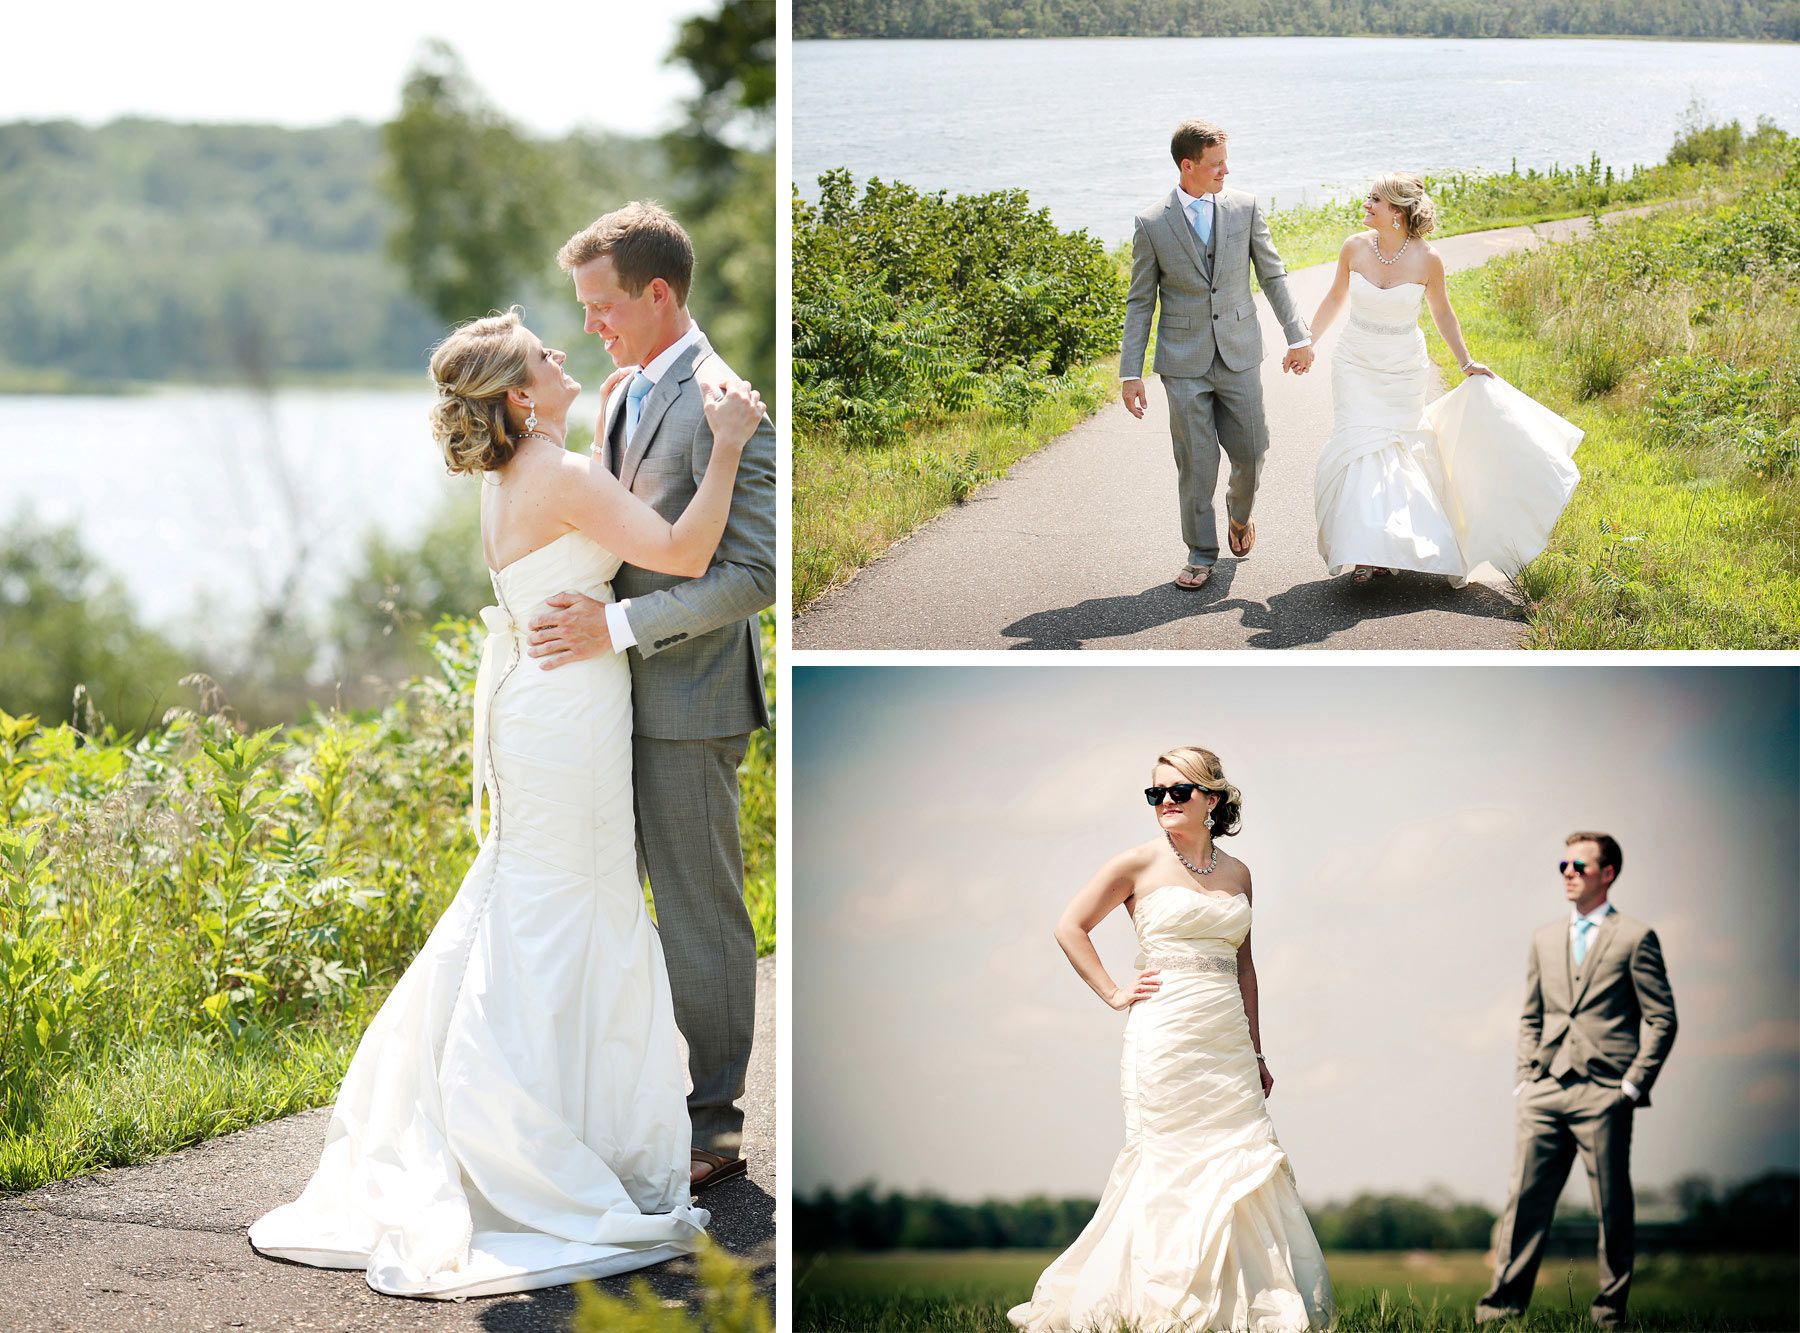 03-Brainerd-Minnesota-Wedding-Photography-by-Vick-Photography-Craguns-Resort-First-Look-Lucy-&-Matt.jpg